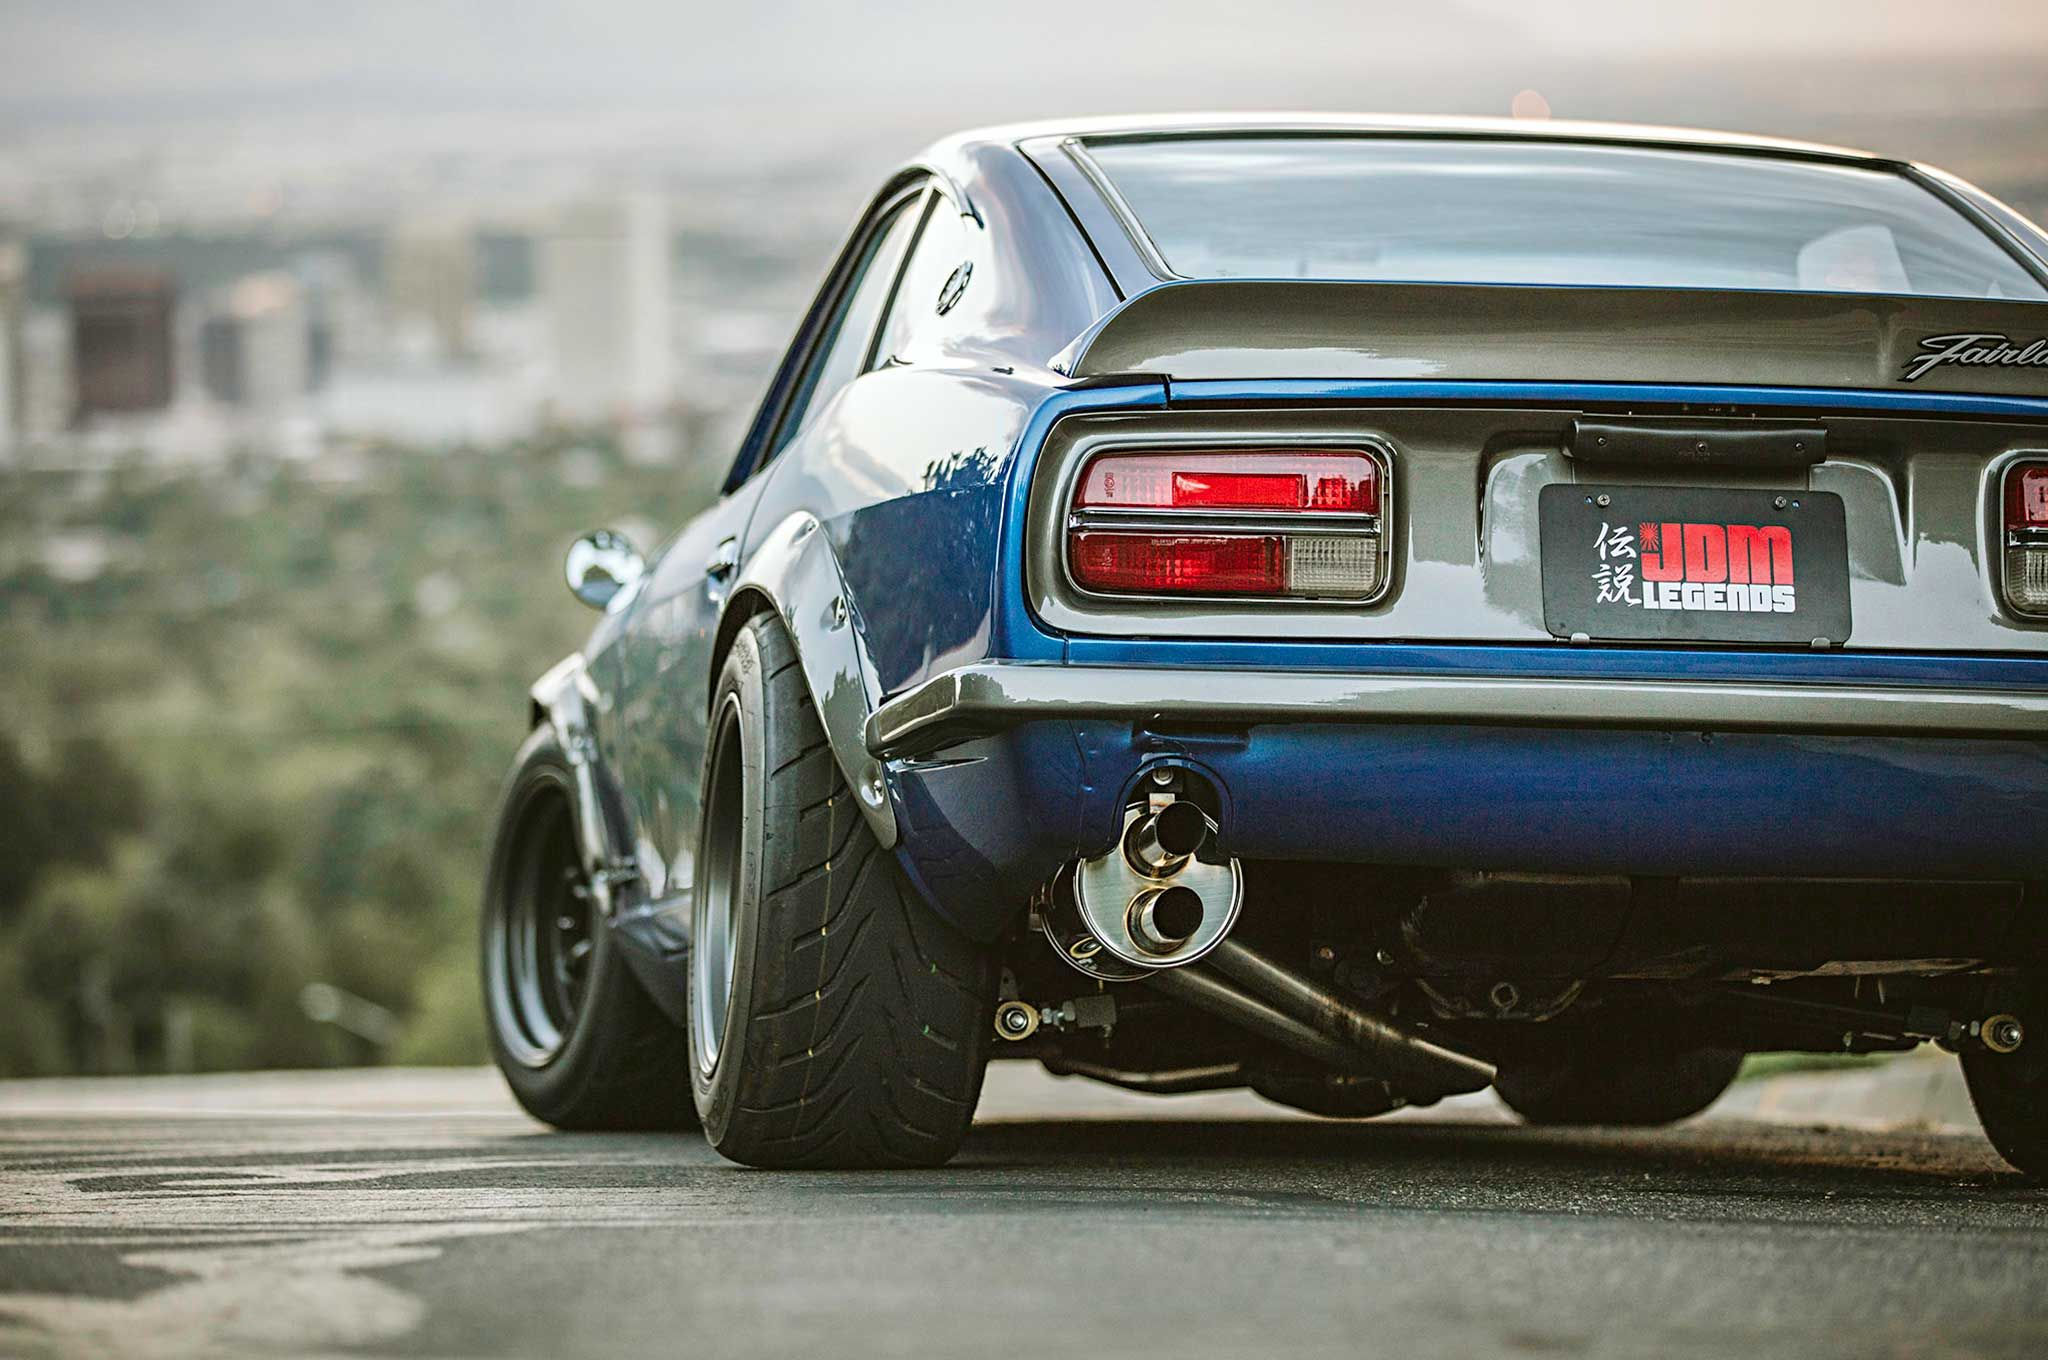 JDM Legends has built its reputation with detail-oriented restorations on vintage JDM cars. This 1973 Datsun 240Z is perhaps their greatest work to date.